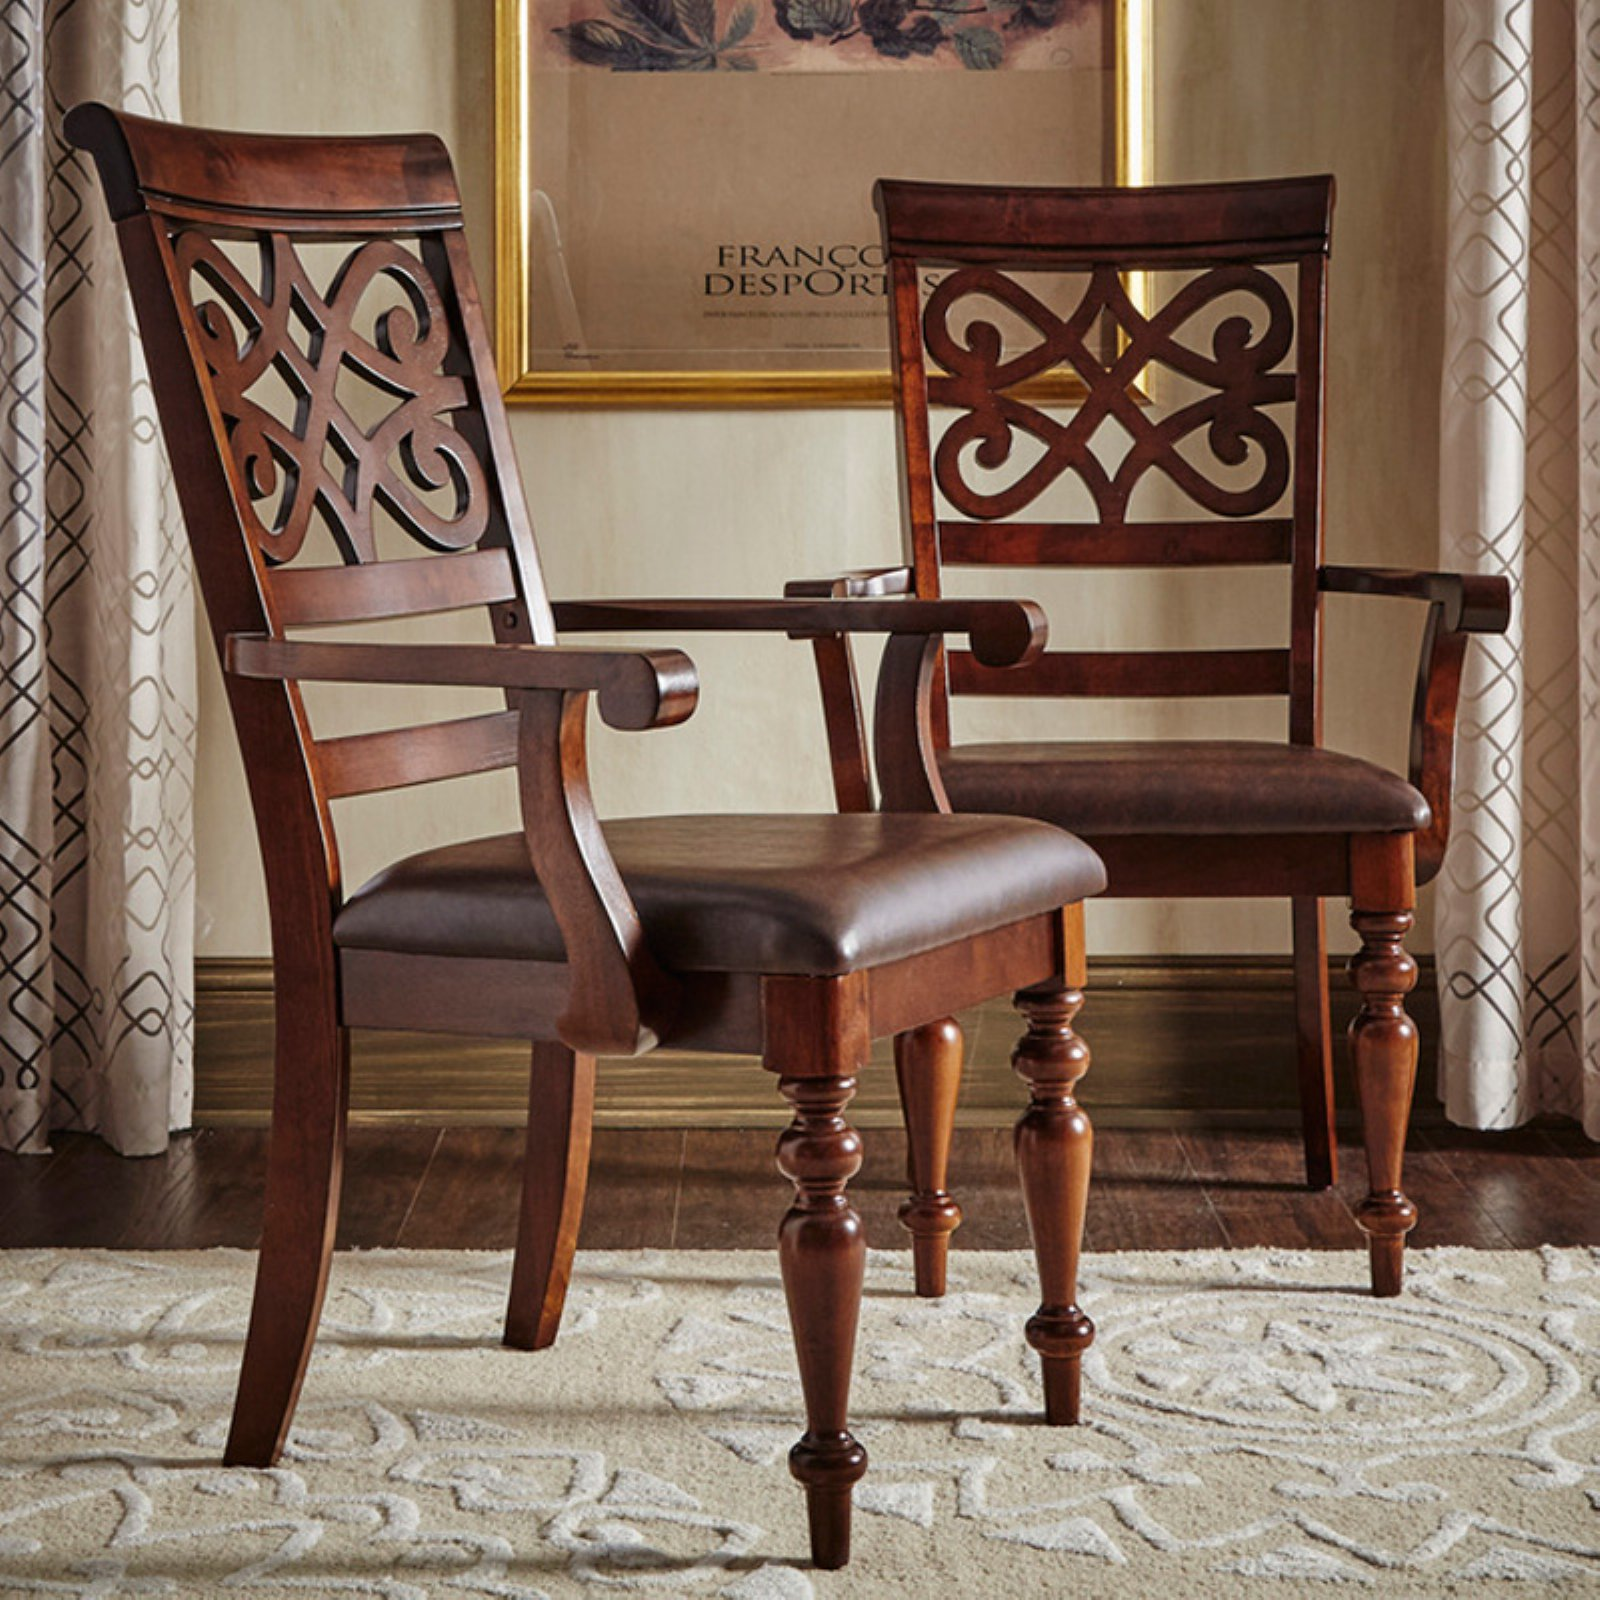 Homelegance Virginia Dining Armchairs Set of 2 by Top-Line Furniture Warehouse